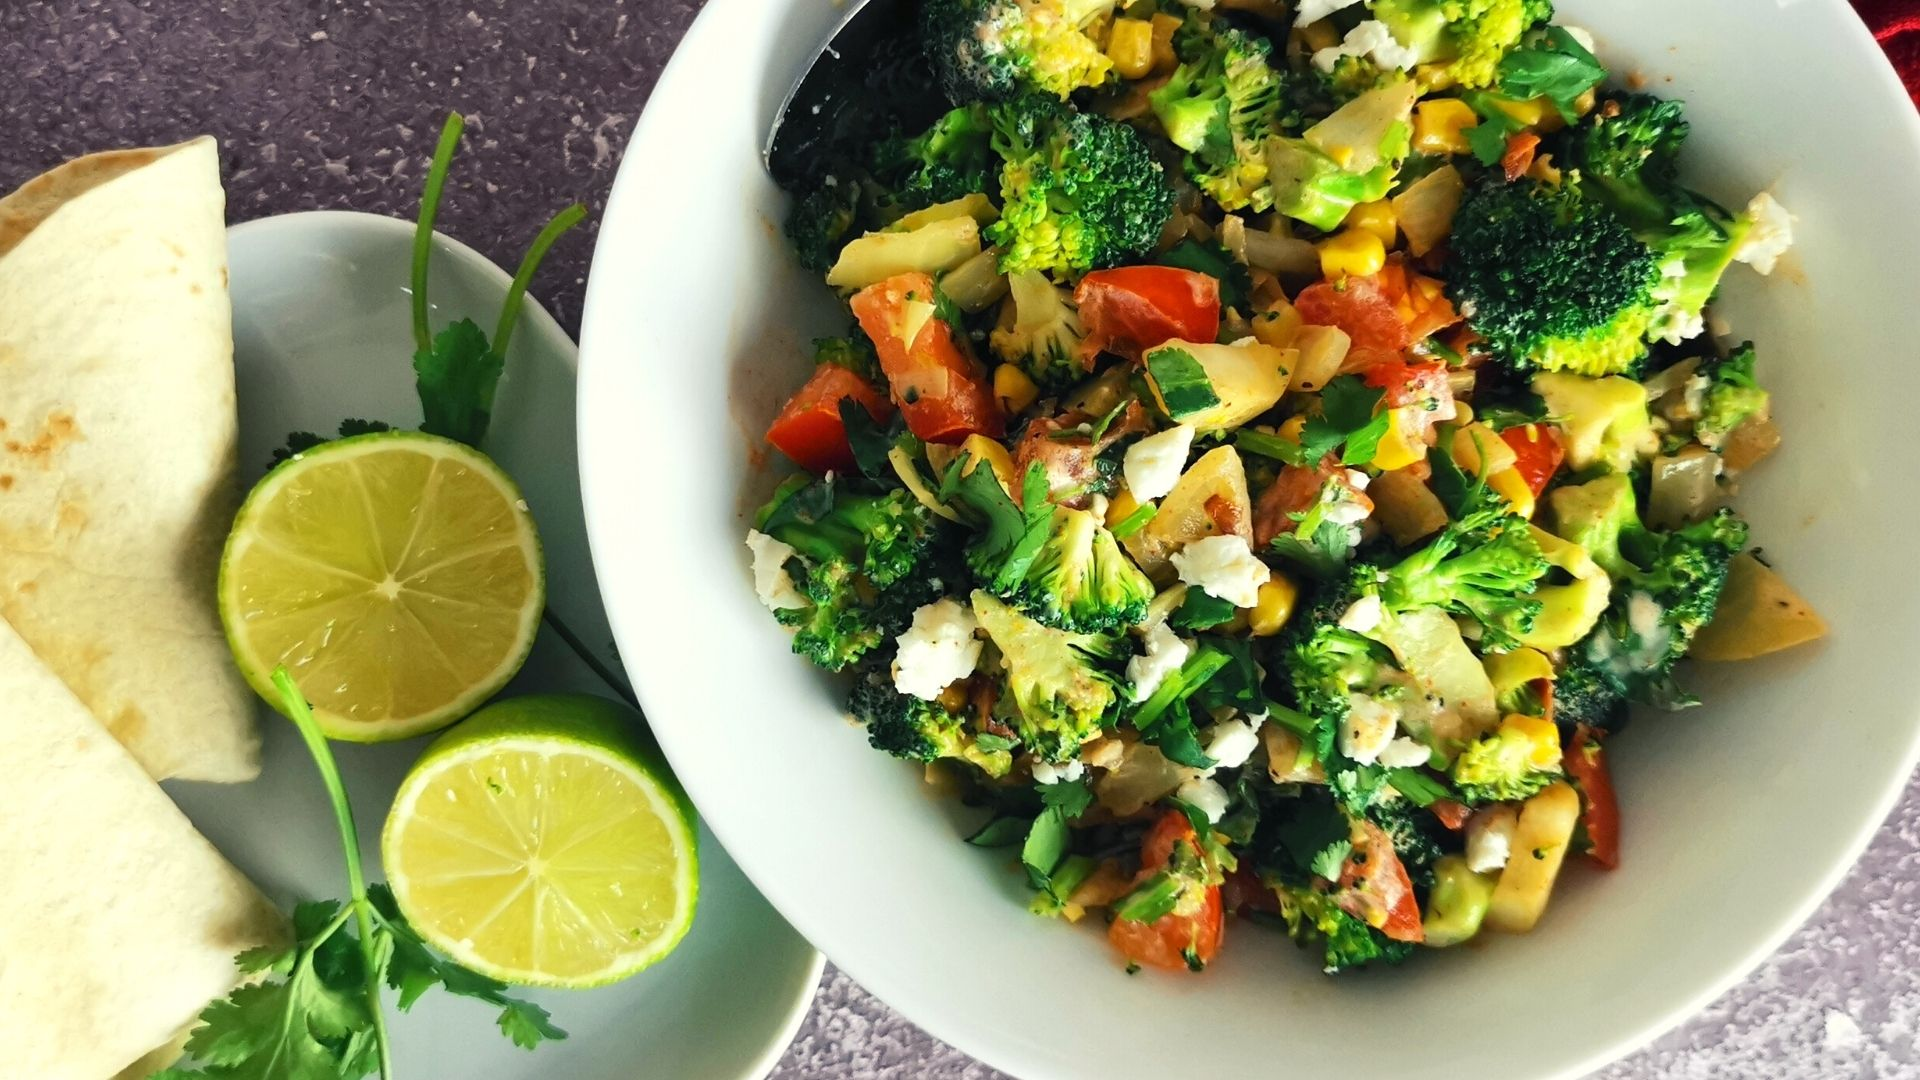 Mexican Broccoli, A Delicious Mexican Style Side